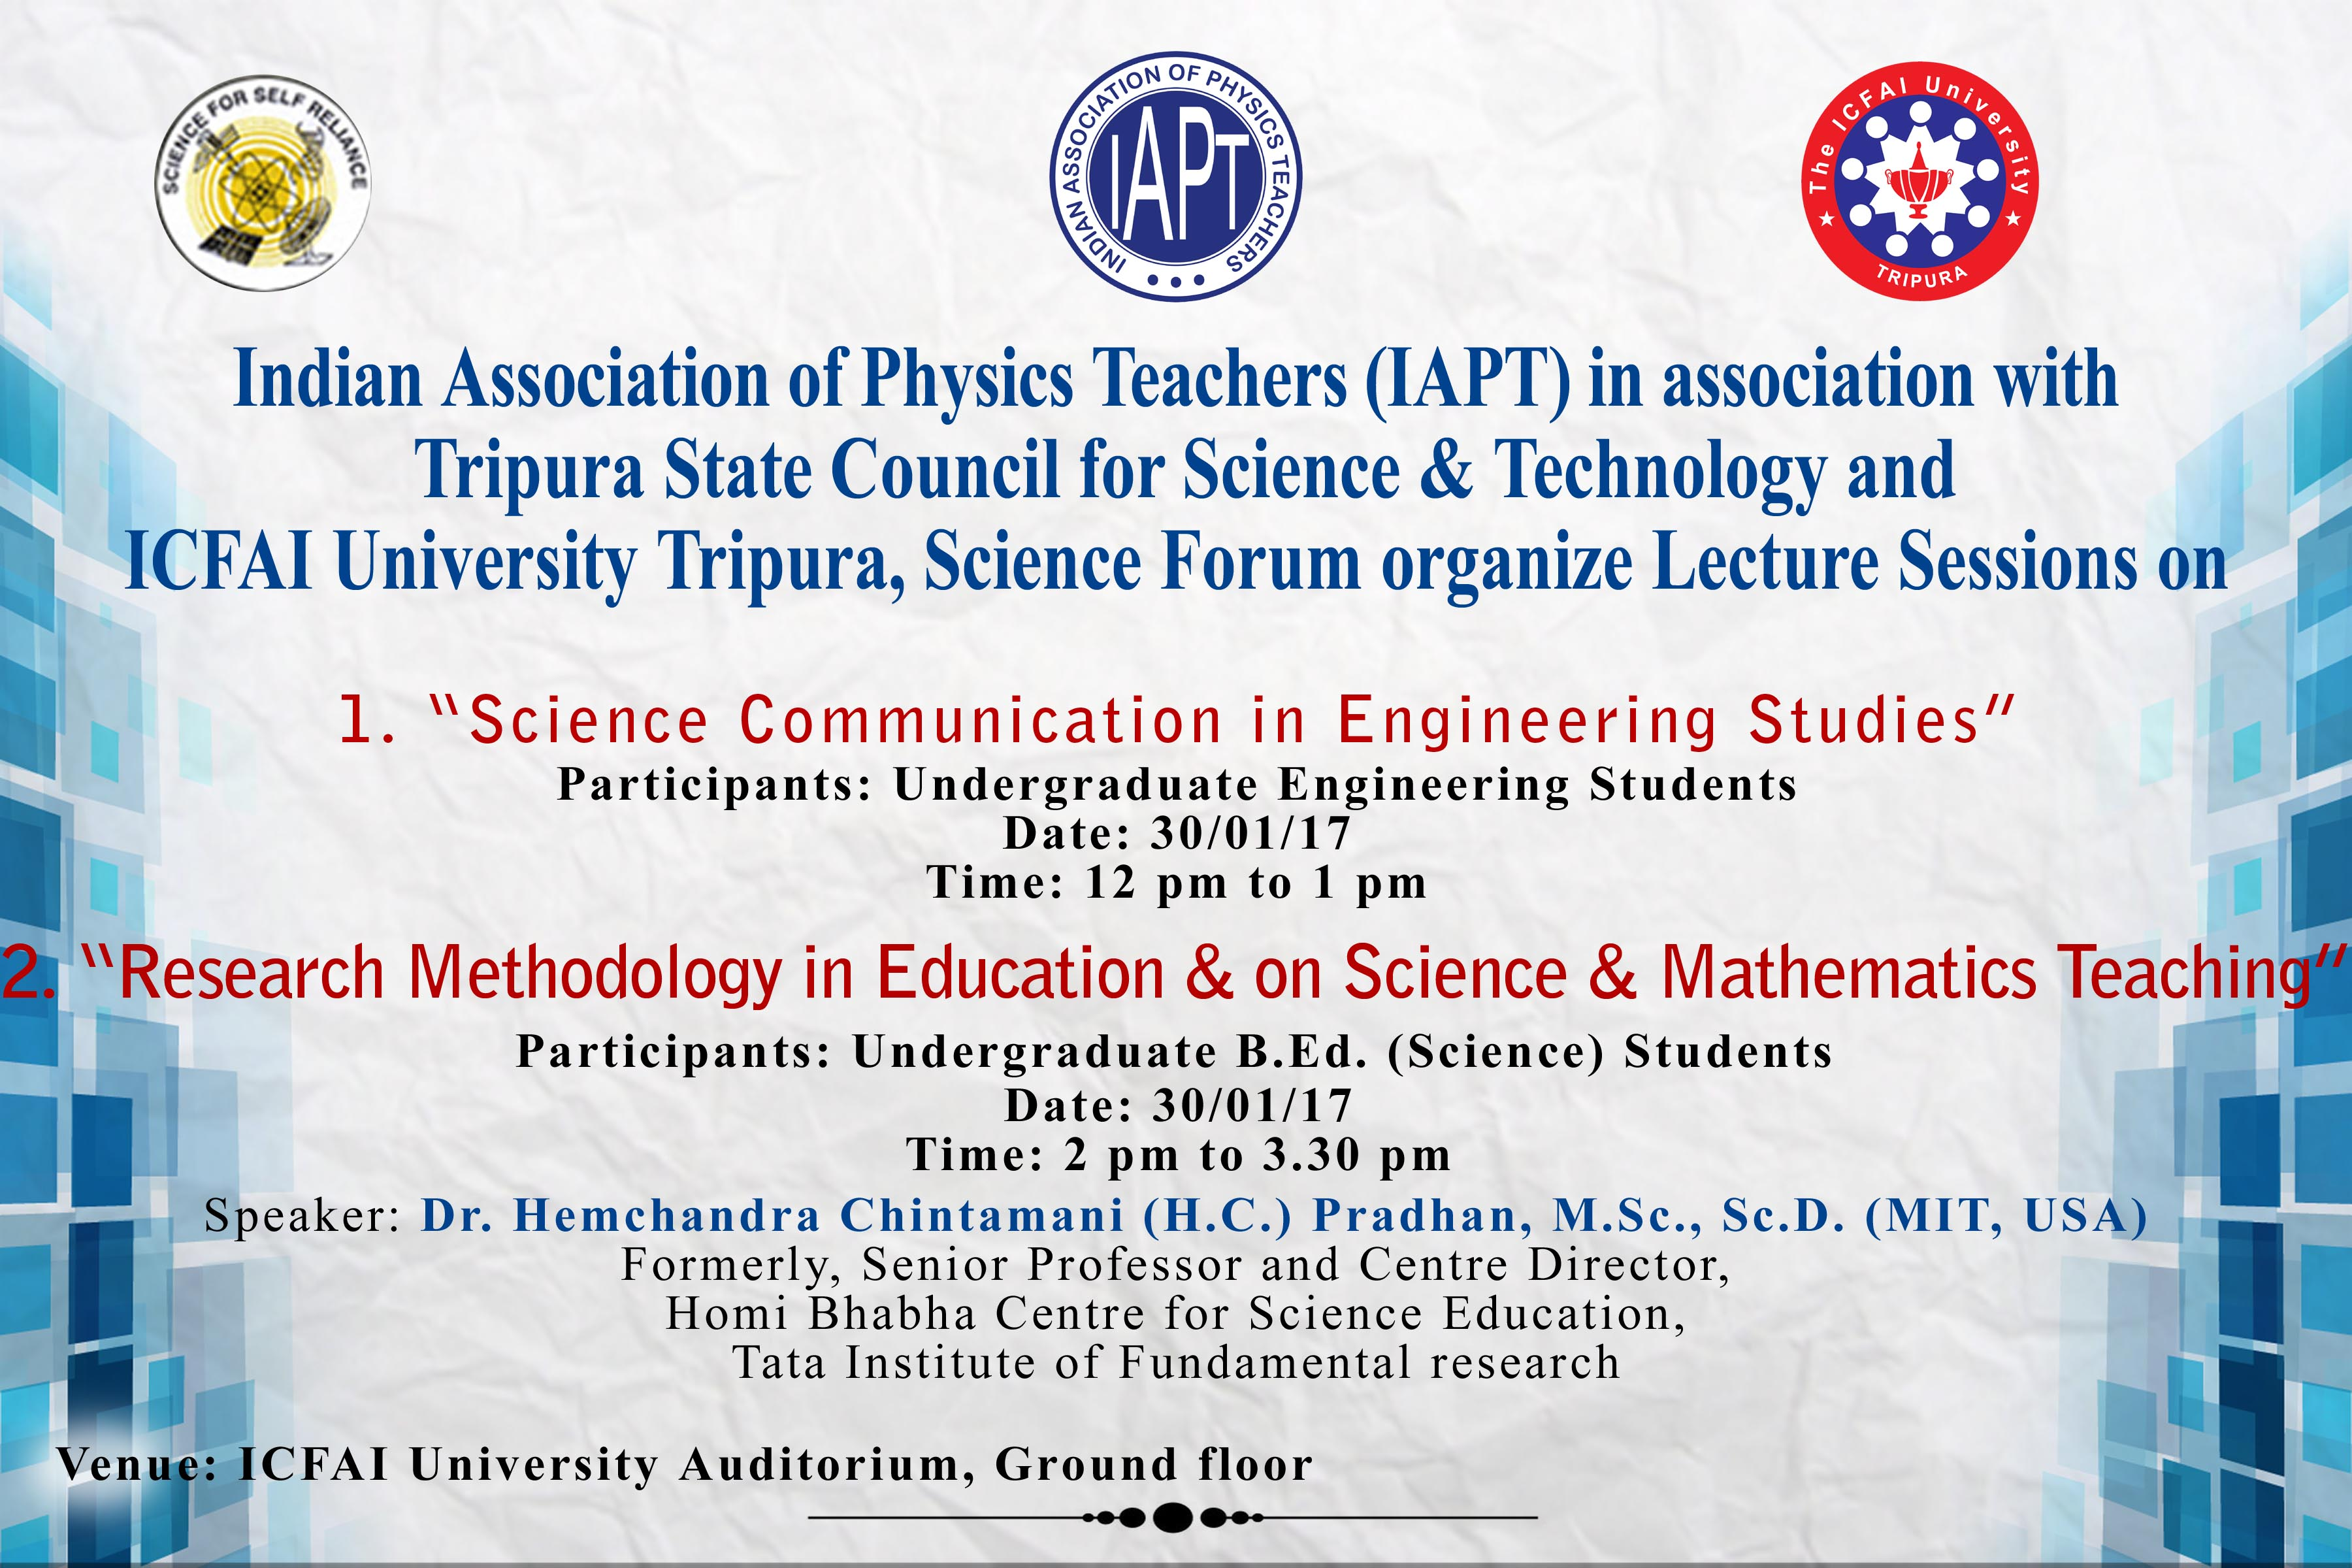 doctoral thesis on self help groups Shodhganga phd thesis in self help groups 25 feb, 2018 en uncategorized por uc office of admissions releases new essay prompts for class of 2021.